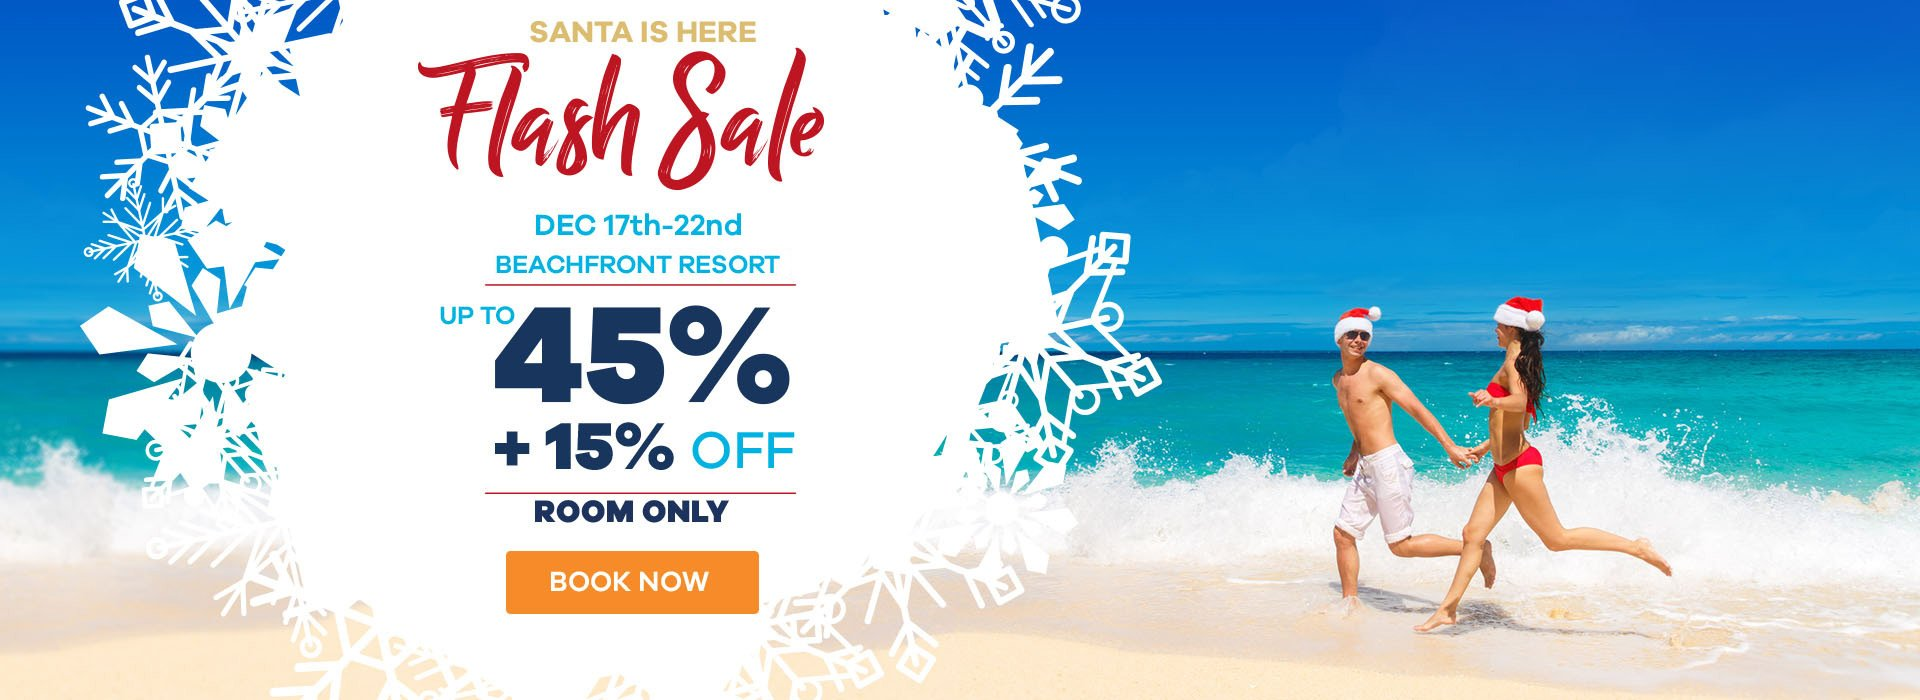 Gfk Pool Sale Caribbean Resort Simpson Bay Beach Resort And Marina